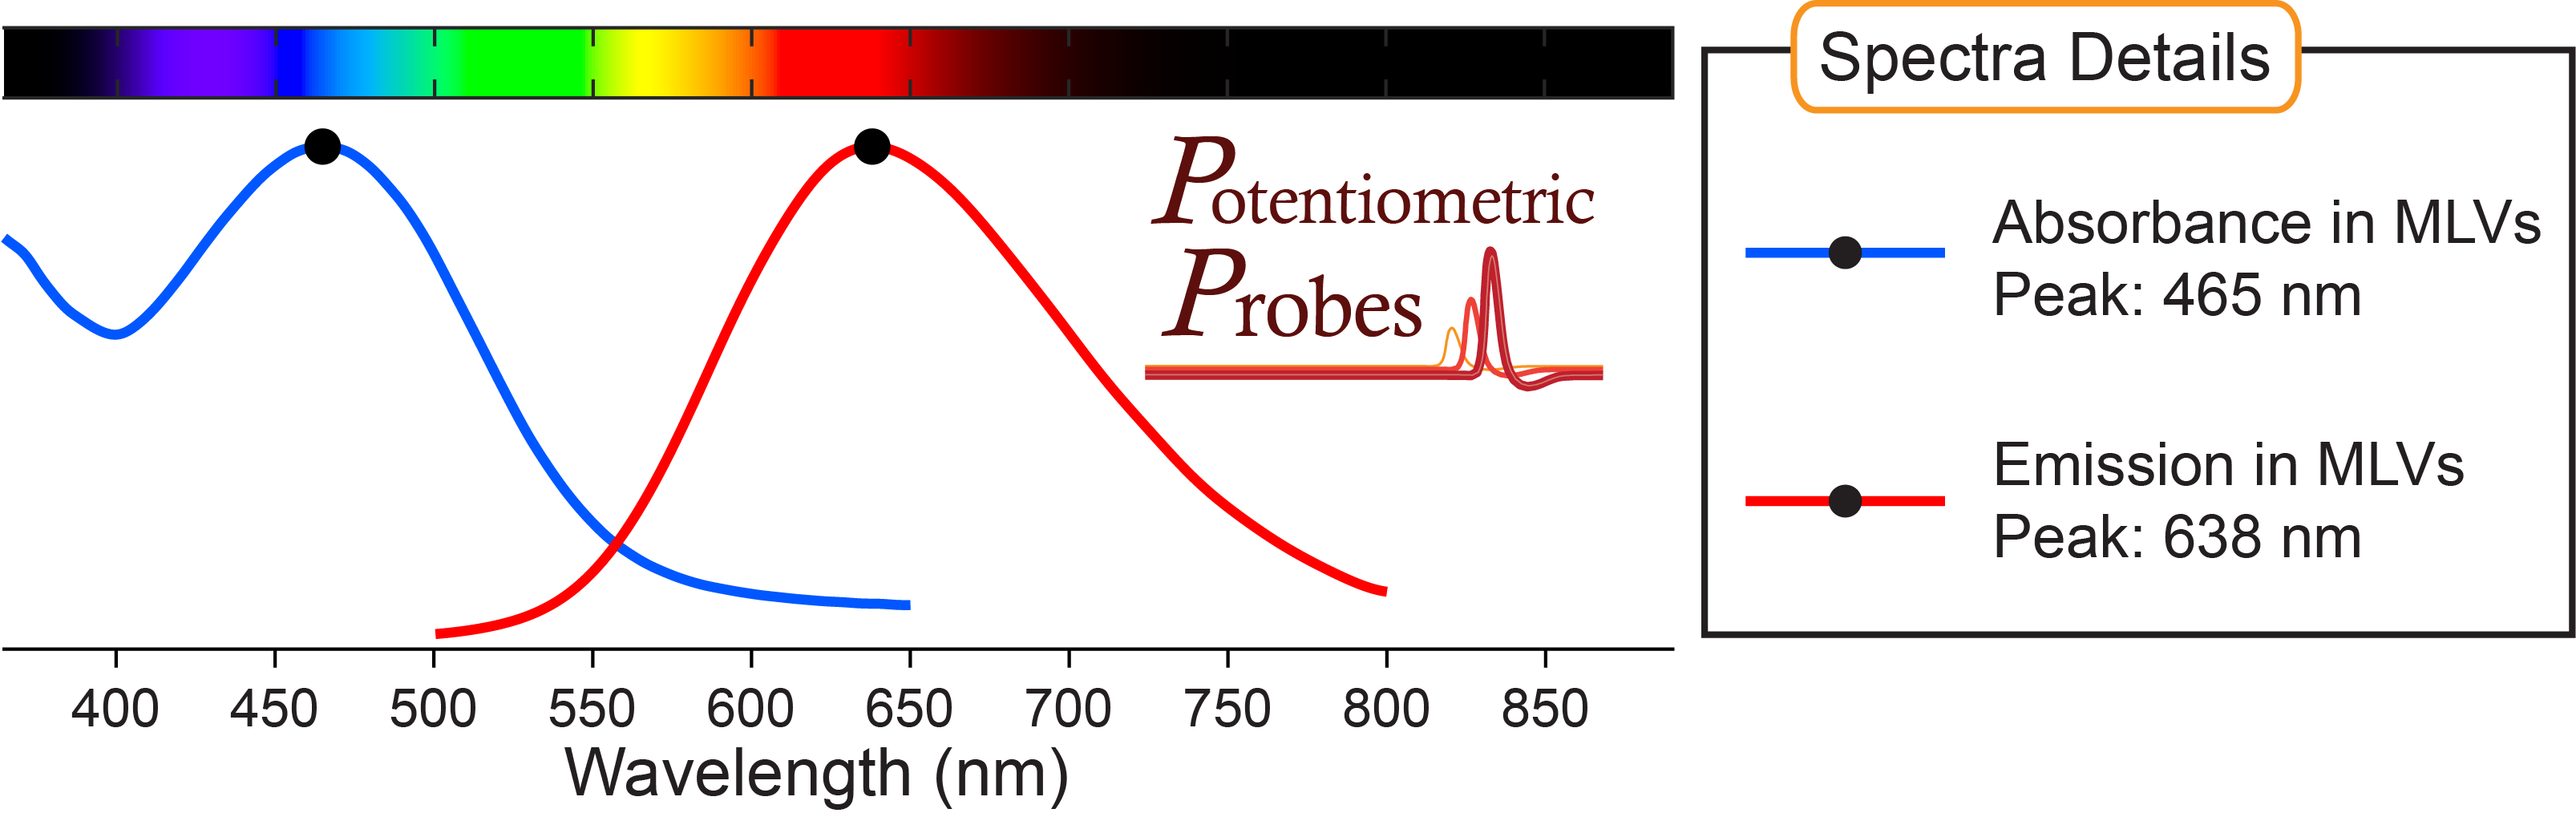 Spectra in MLVs of voltage-sensitive dye Di-4-AN(F)EP(F)PTEA from Potentiometric Probes